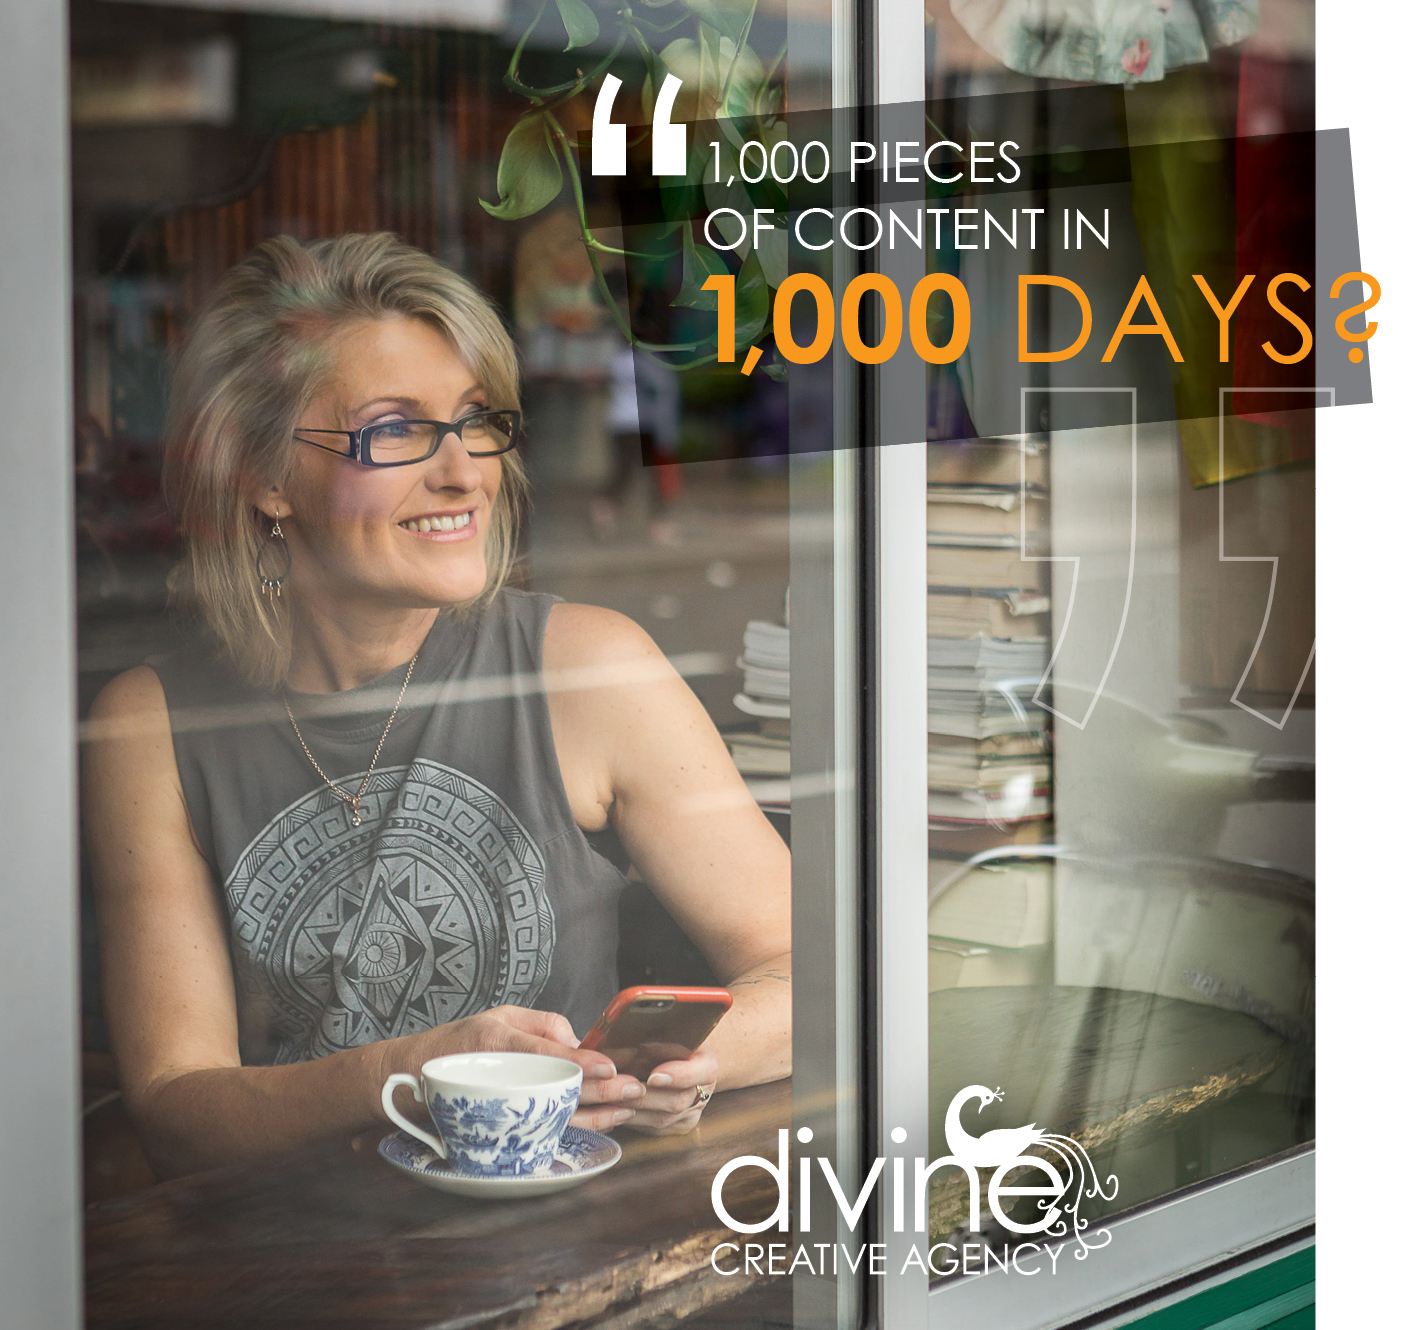 Do you think you could create 1,000 pieces of content in 1,000 days?